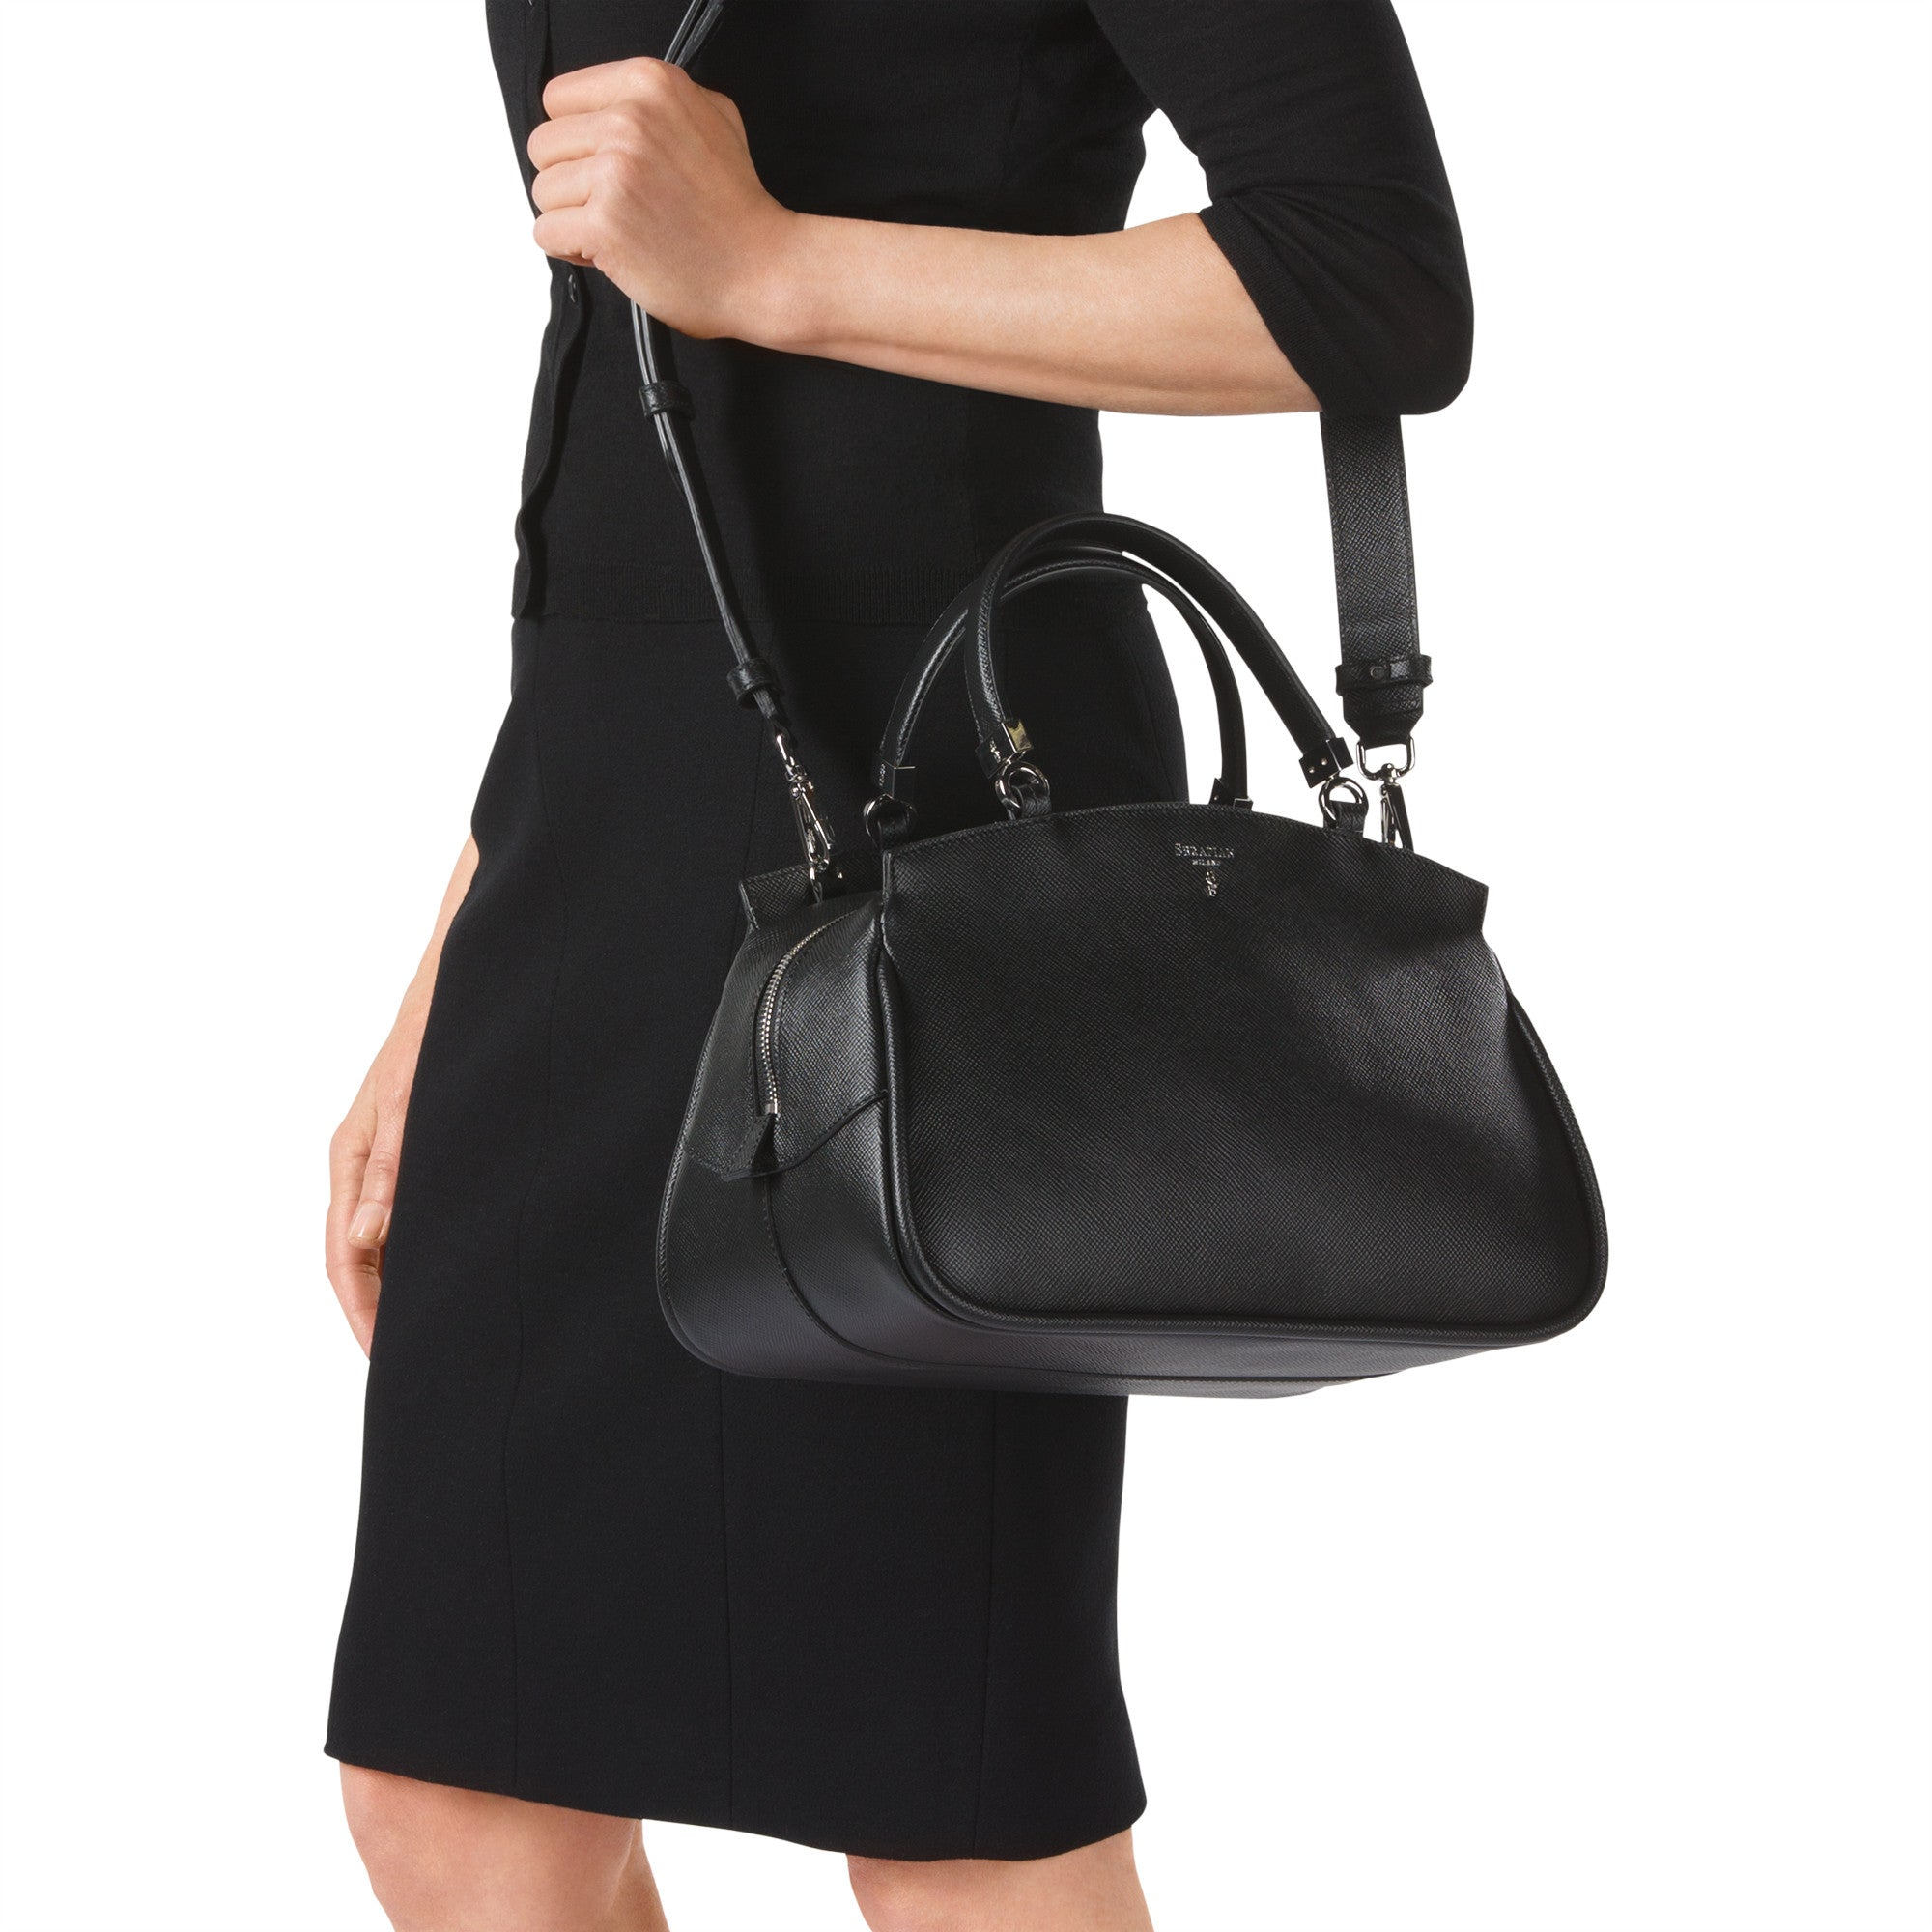 Nadia Bag Evolution - Black